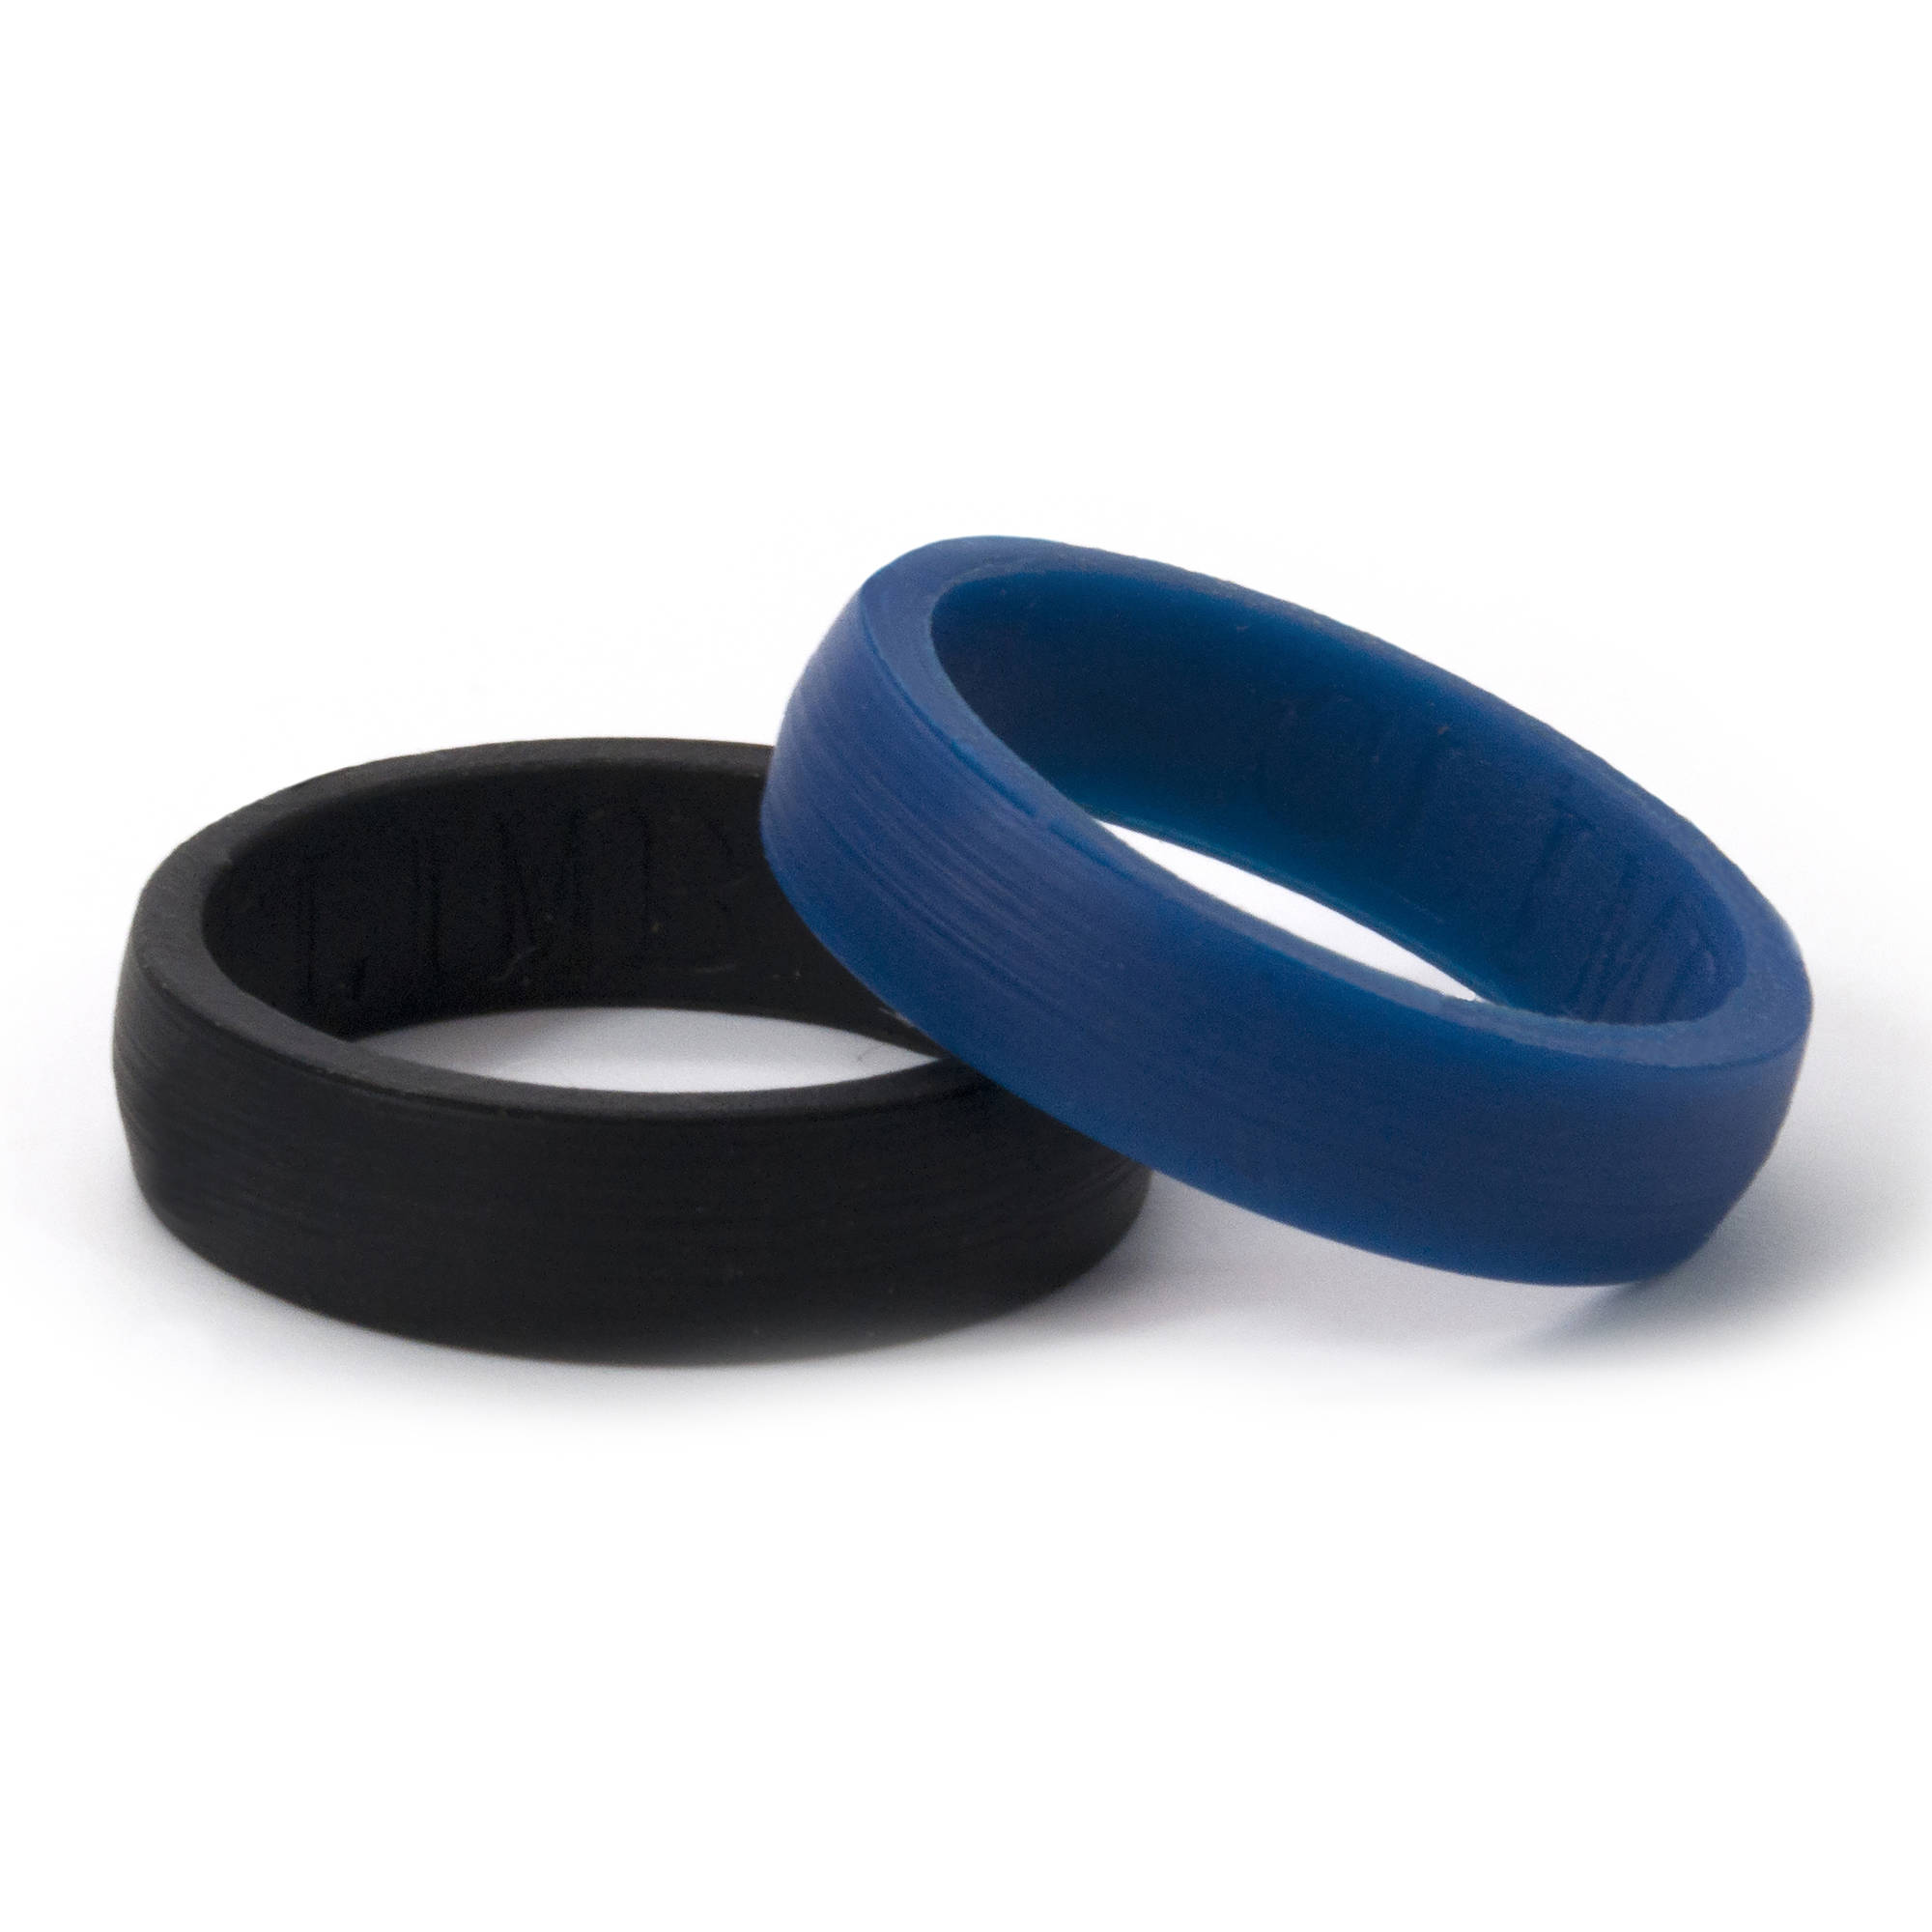 6mm HR Black and Blue Silicone Rings, 2-Pack